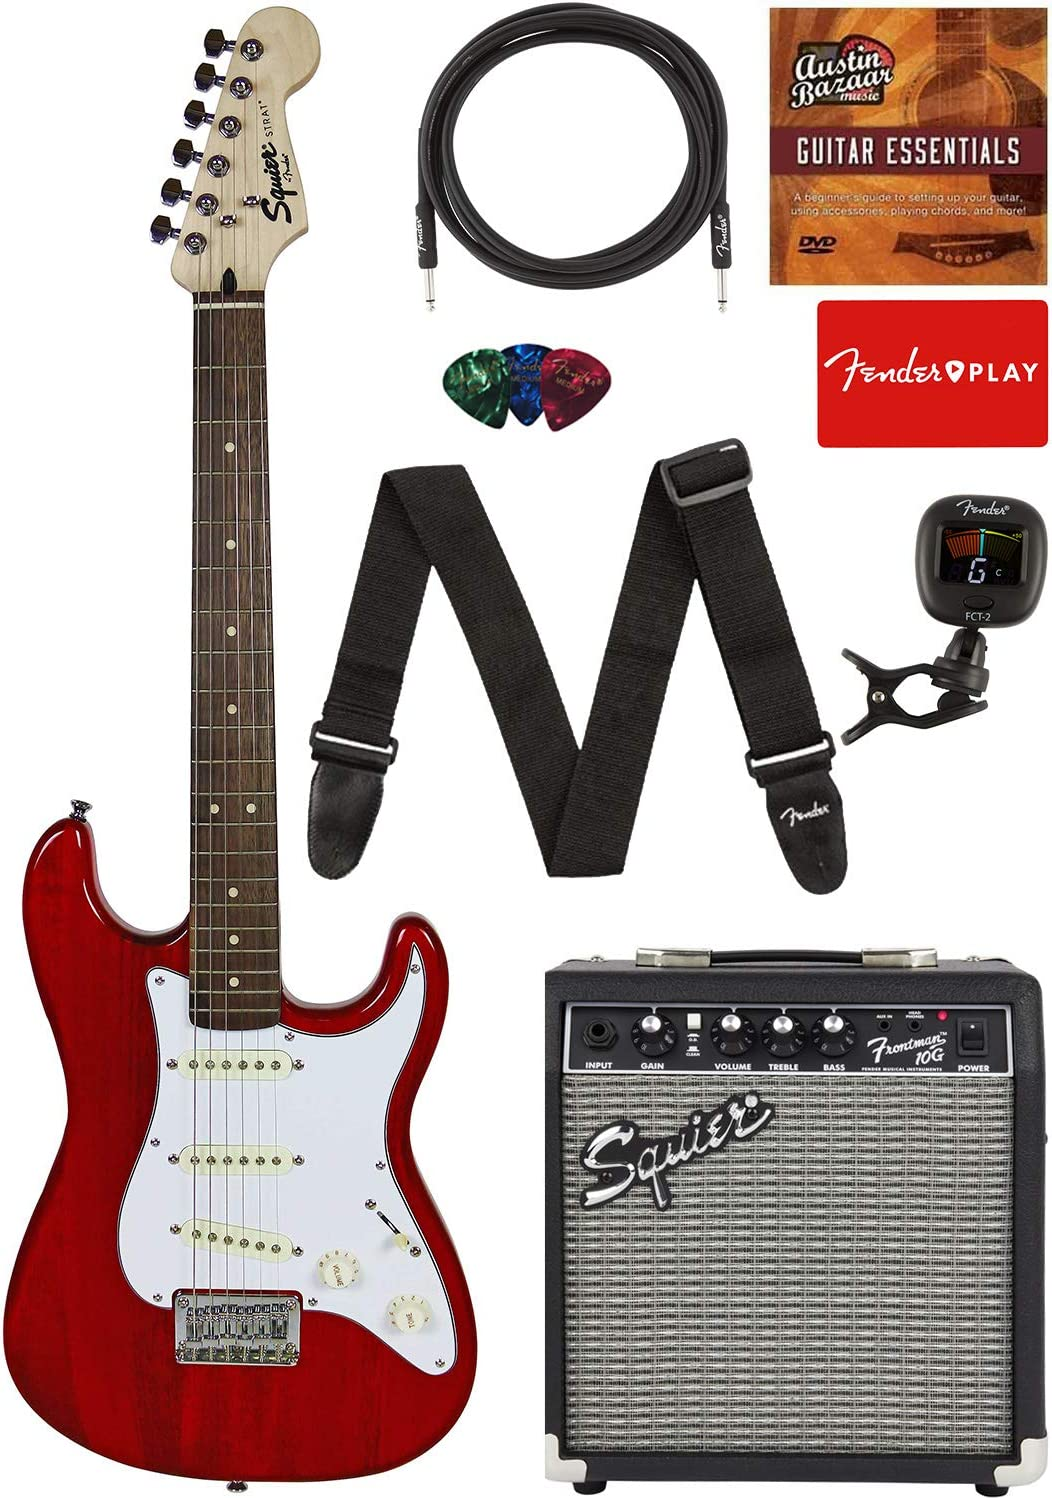 """Fender Squier Short Scale (24"""") Stratocaster - Transparent Red Learn-to-Play Bundle with Frontman 10G Amp, Cable, Tuner, Strap, Picks, Fender Play Online Lessons, and Austin Bazaar Instructional DVD"""